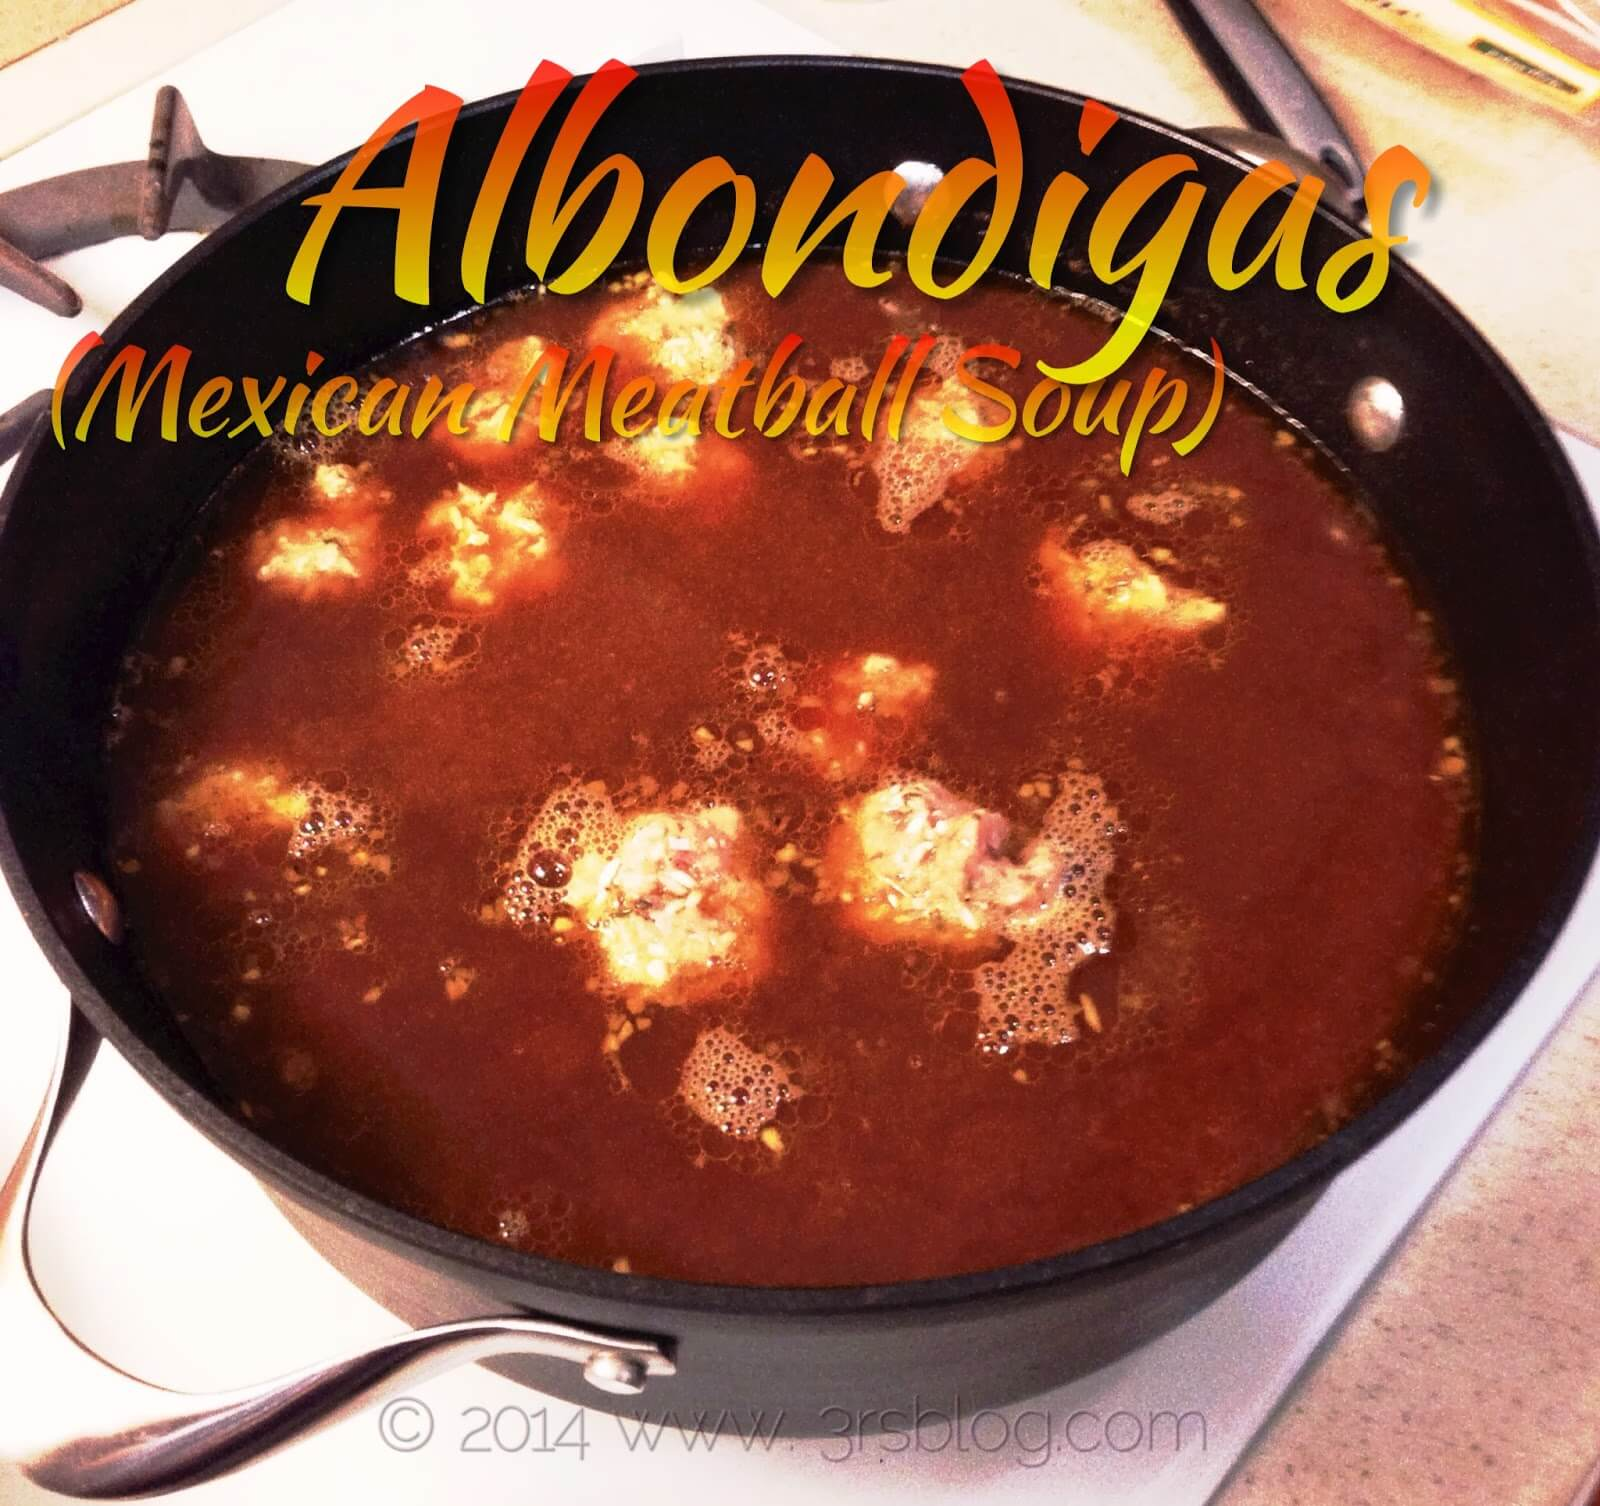 Weekend Cooking: Albondigas (Mexican Meatball Soup)